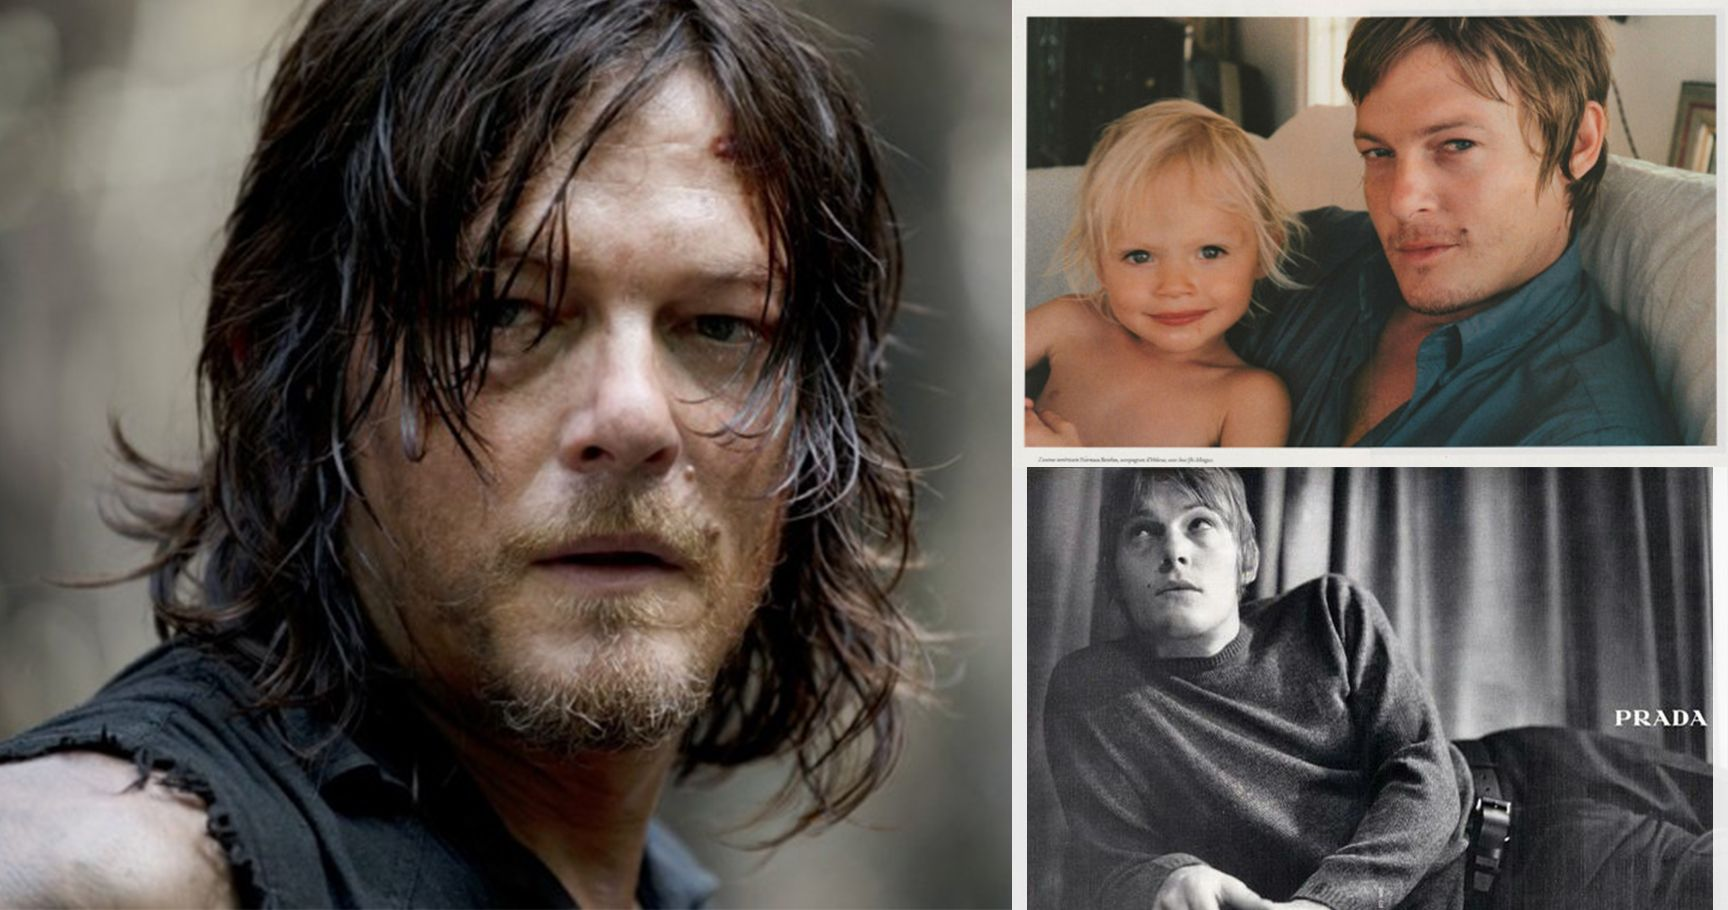 15 Things You Didn't Know About Norman Reedus From 'The Walking Dead'